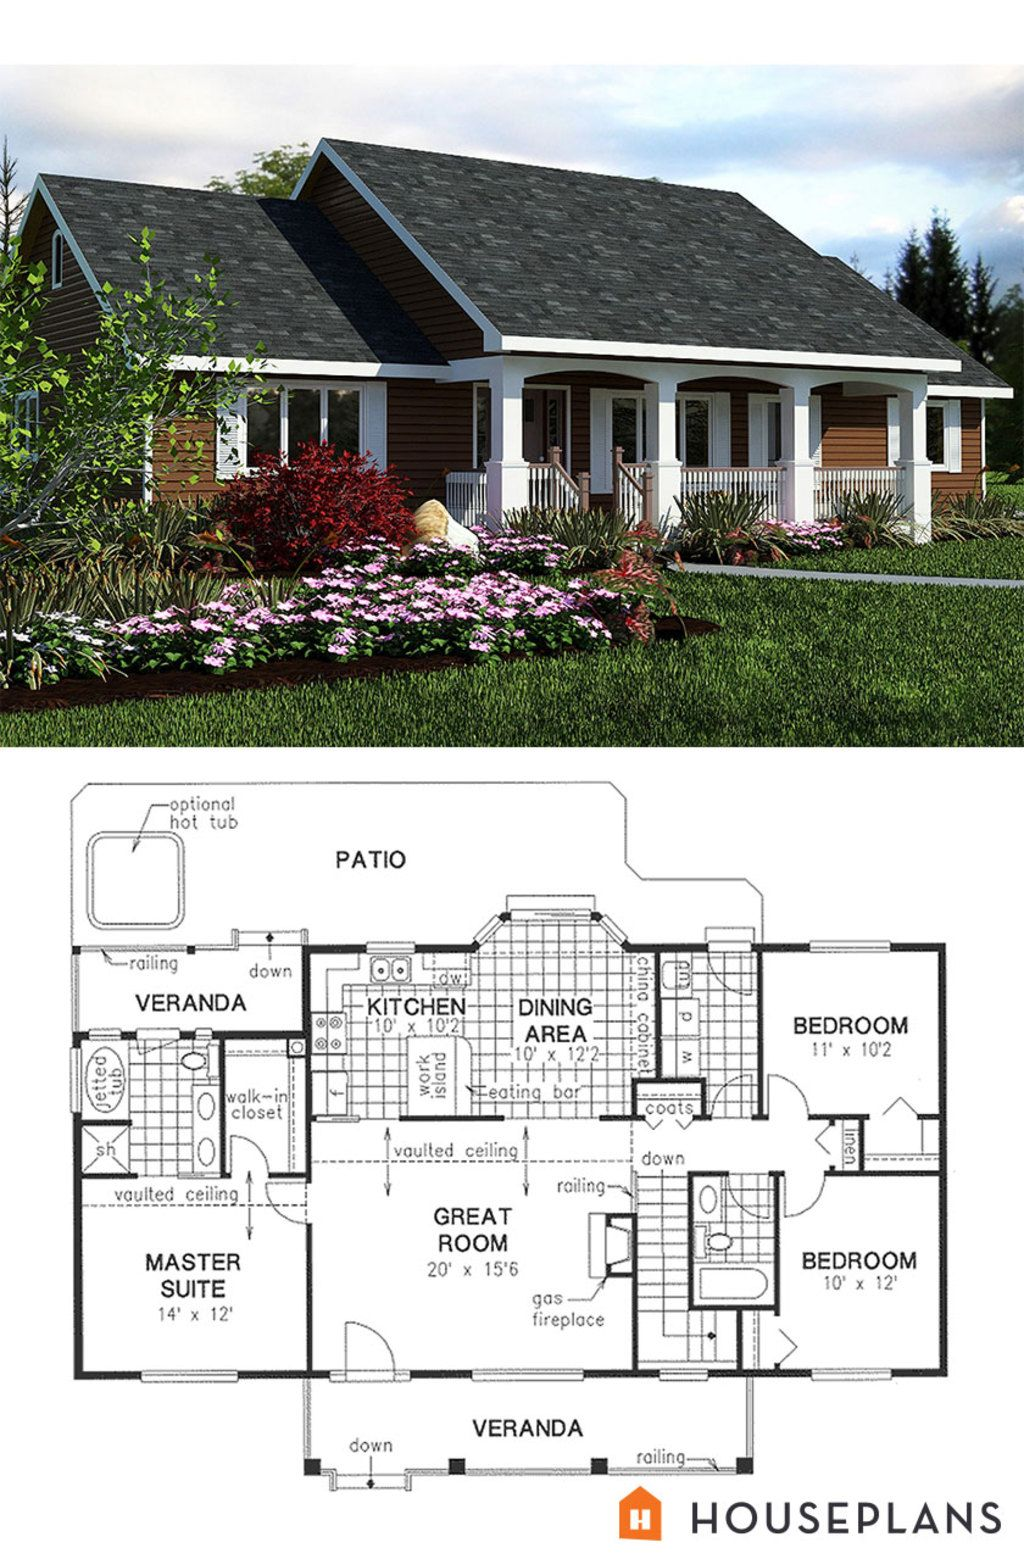 Elevation and plan for simple 1400sft country house | House ... on